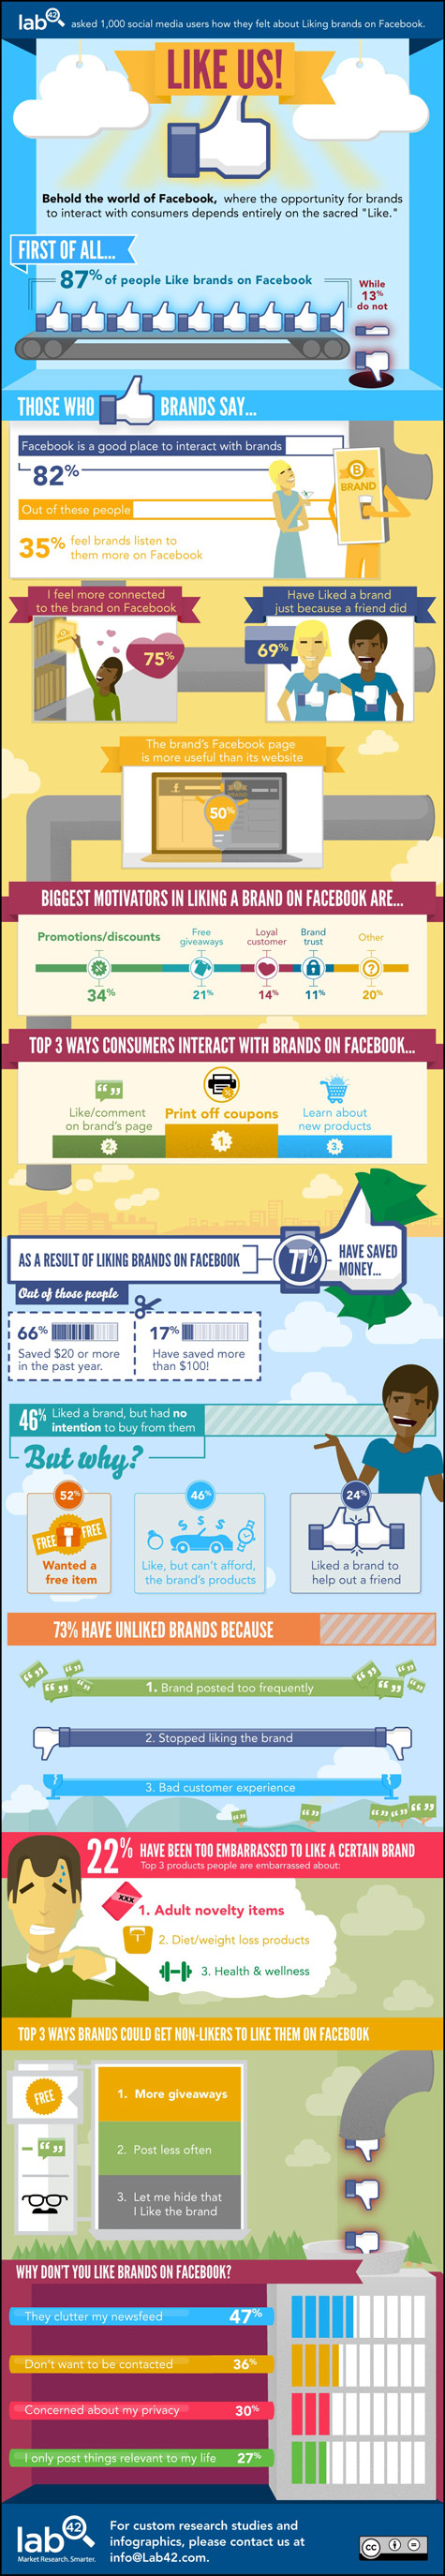 50% of Consumers Value a Brand's Facebook Page More Than Its Website [Infographic]